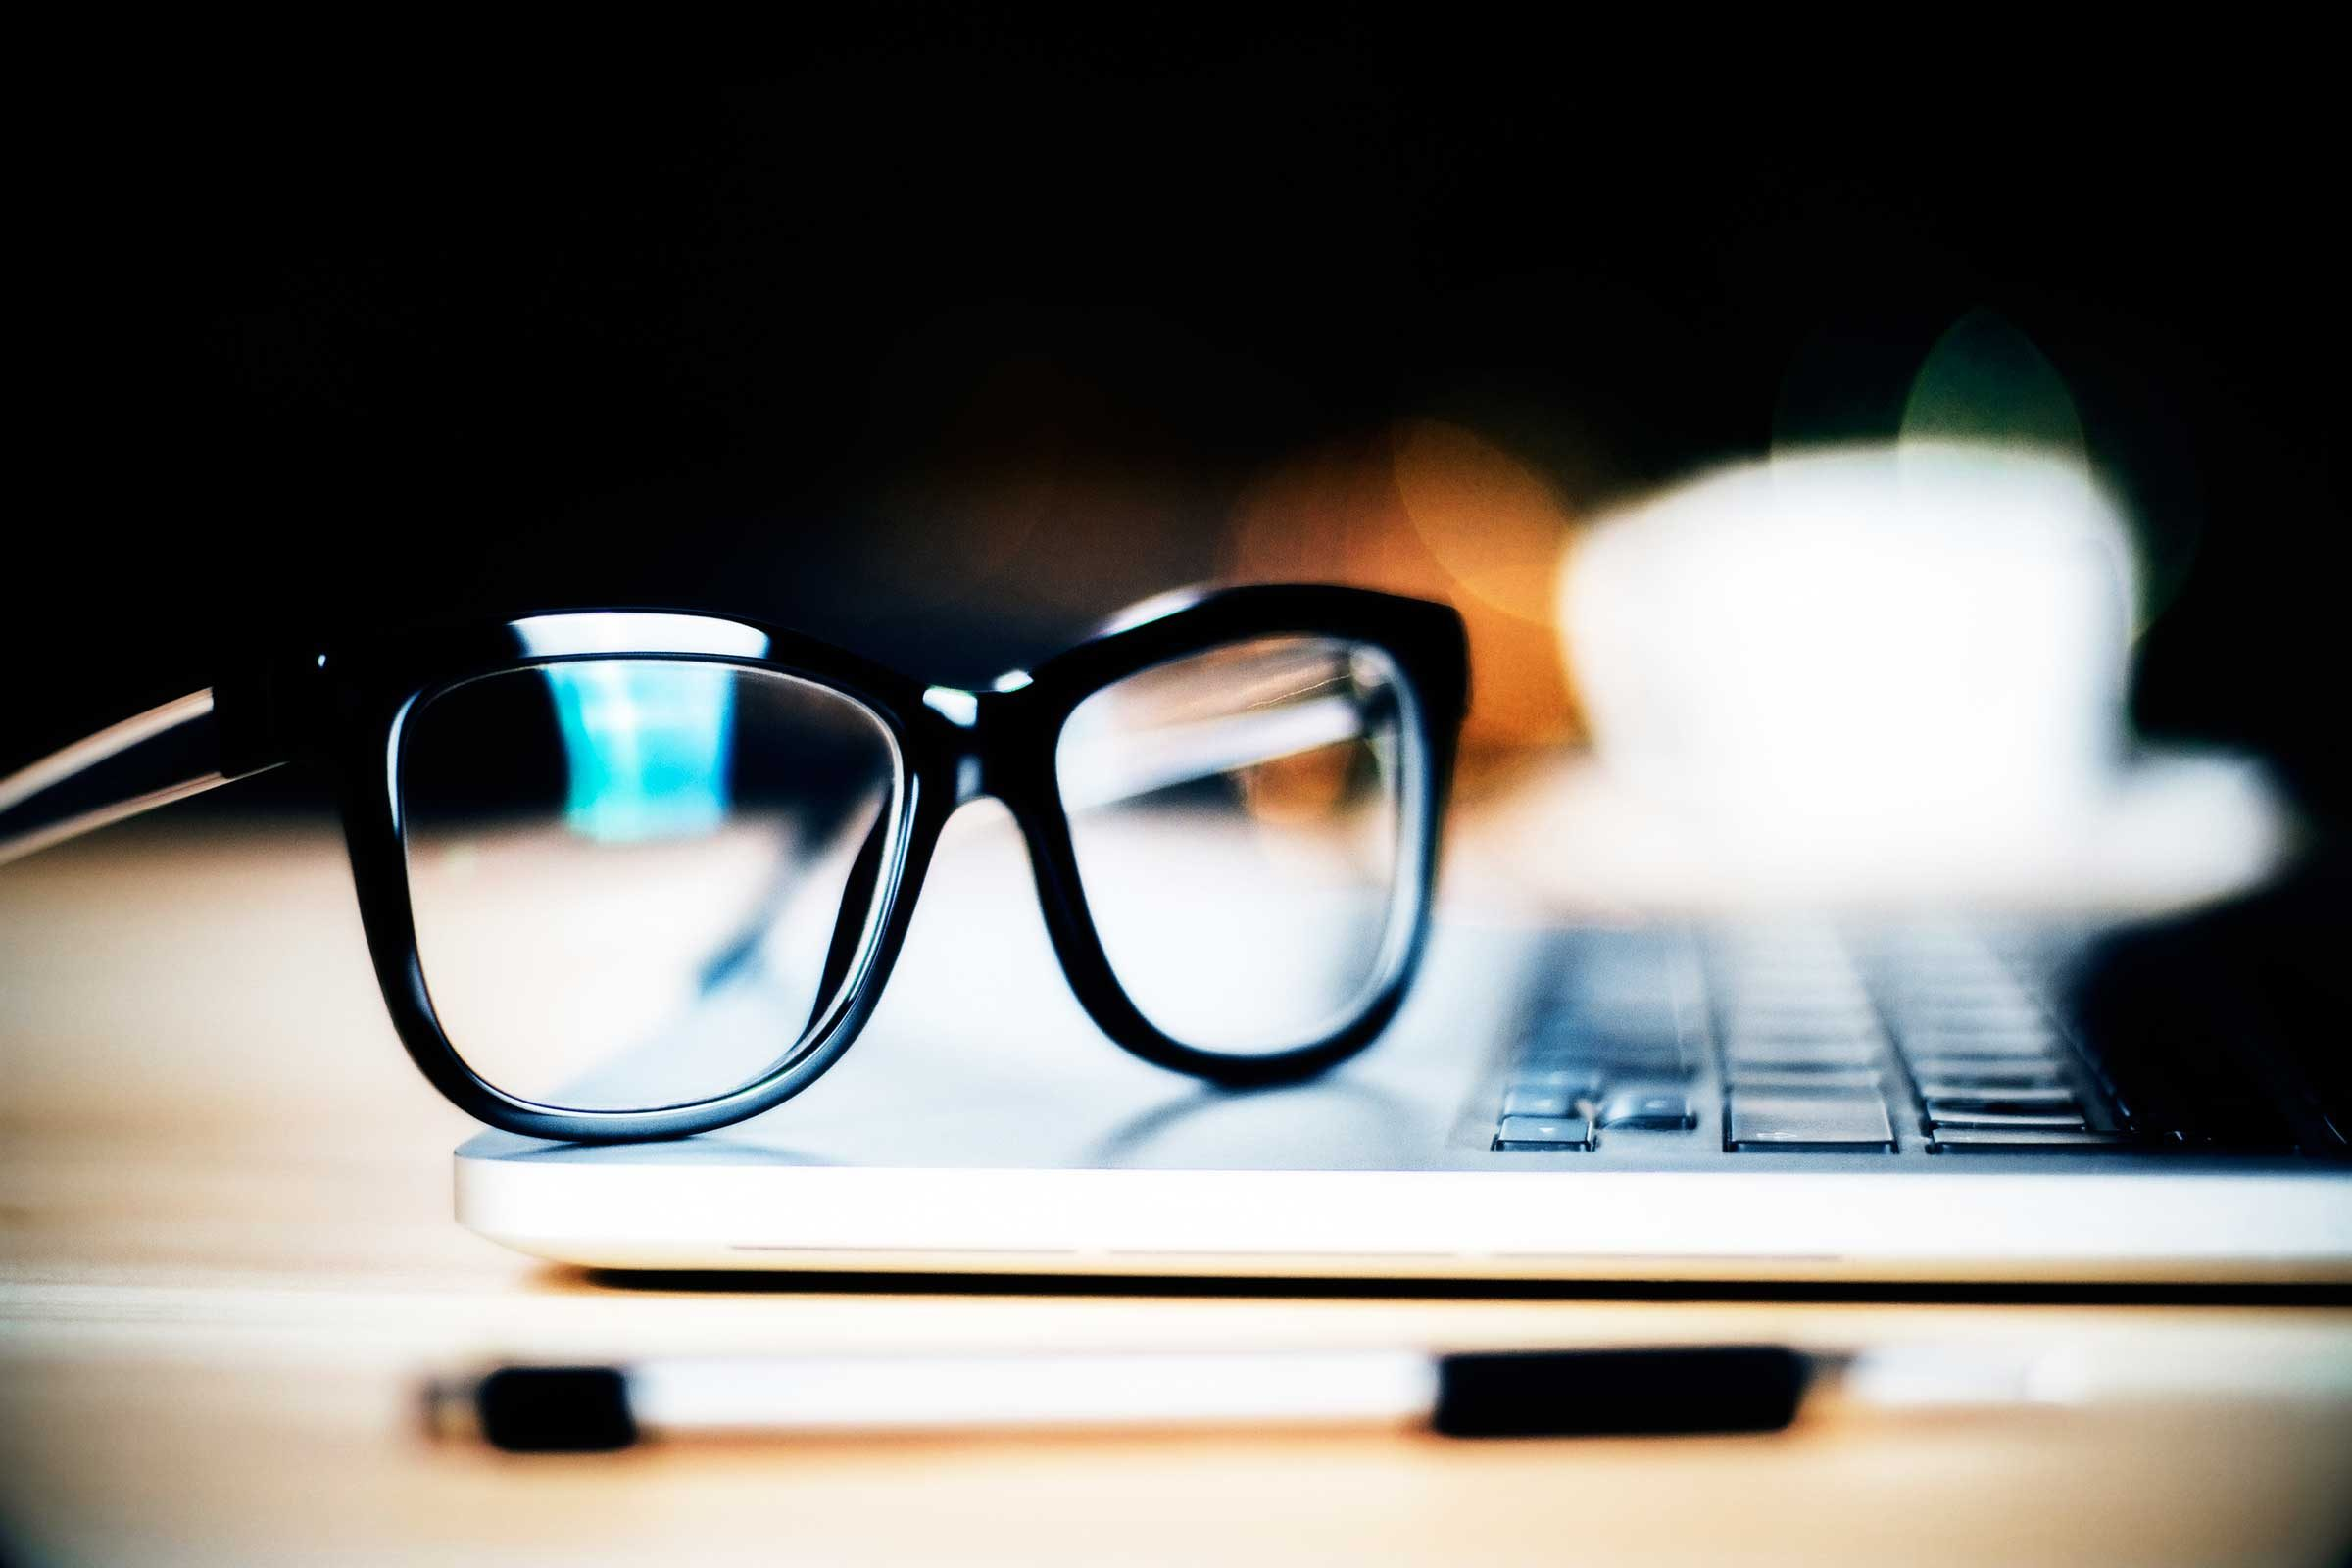 a7c21f20ebd Things To Know Before You Buy Glasses Online